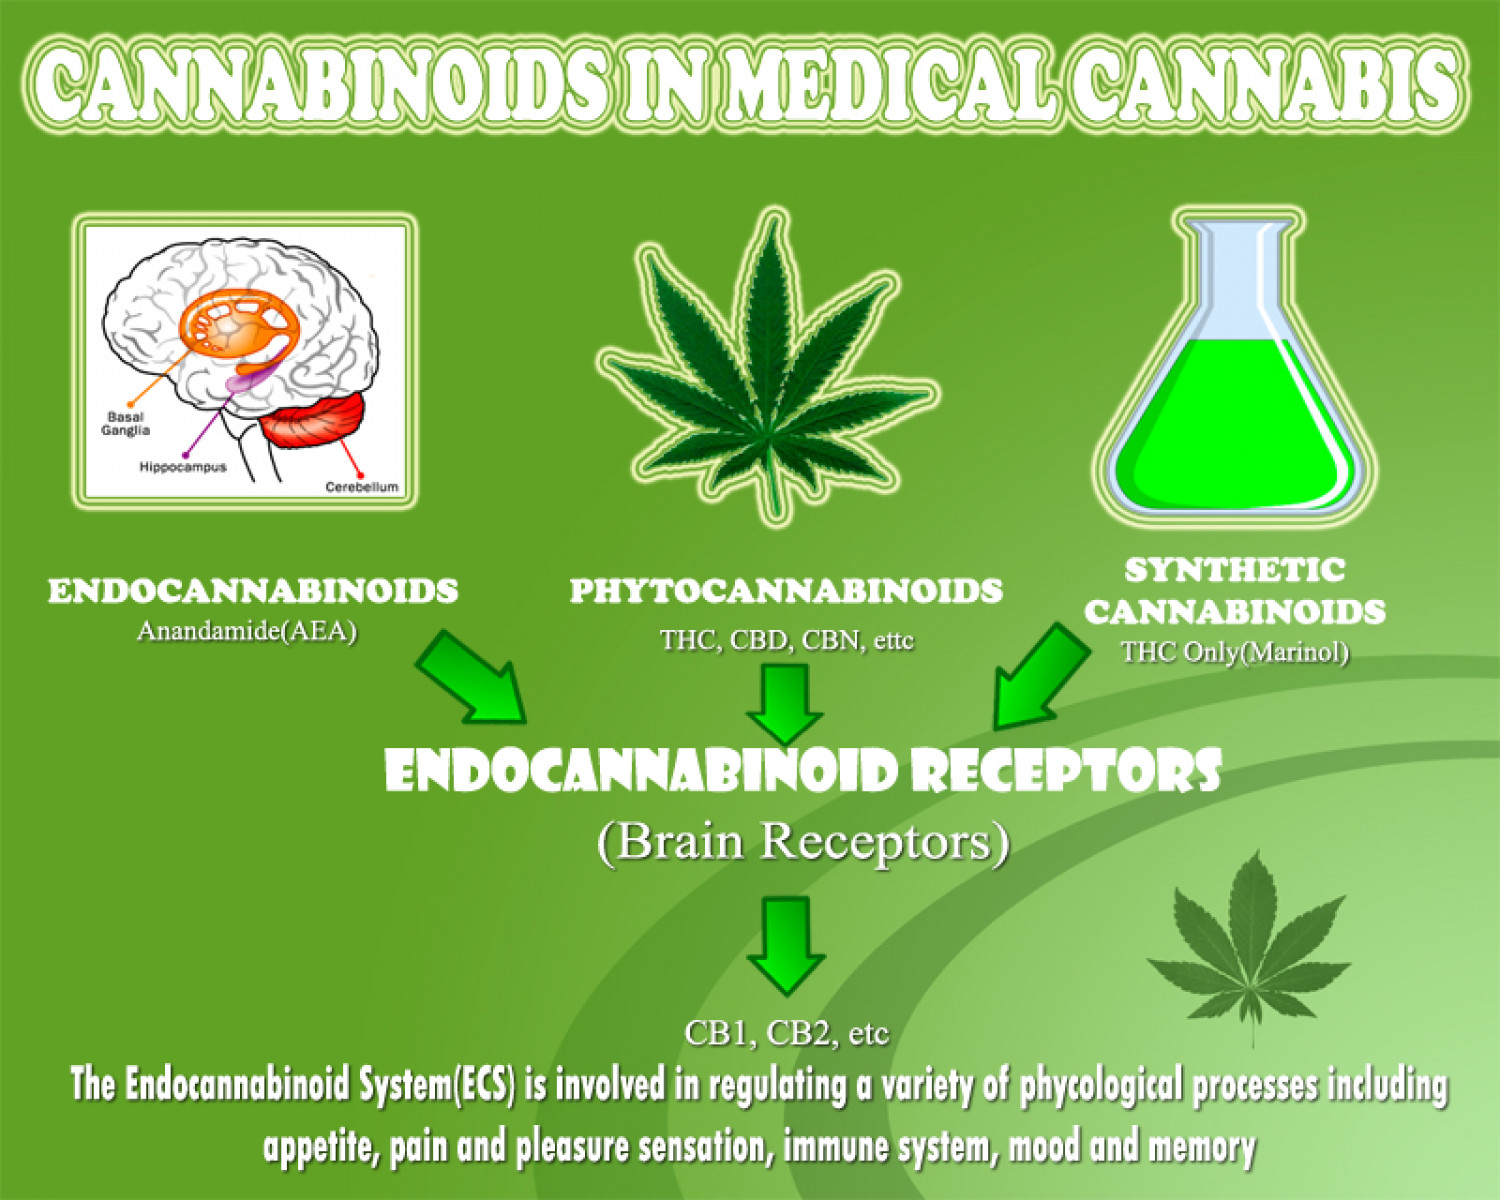 Cannabinoids In Medical Cannabis Infographic